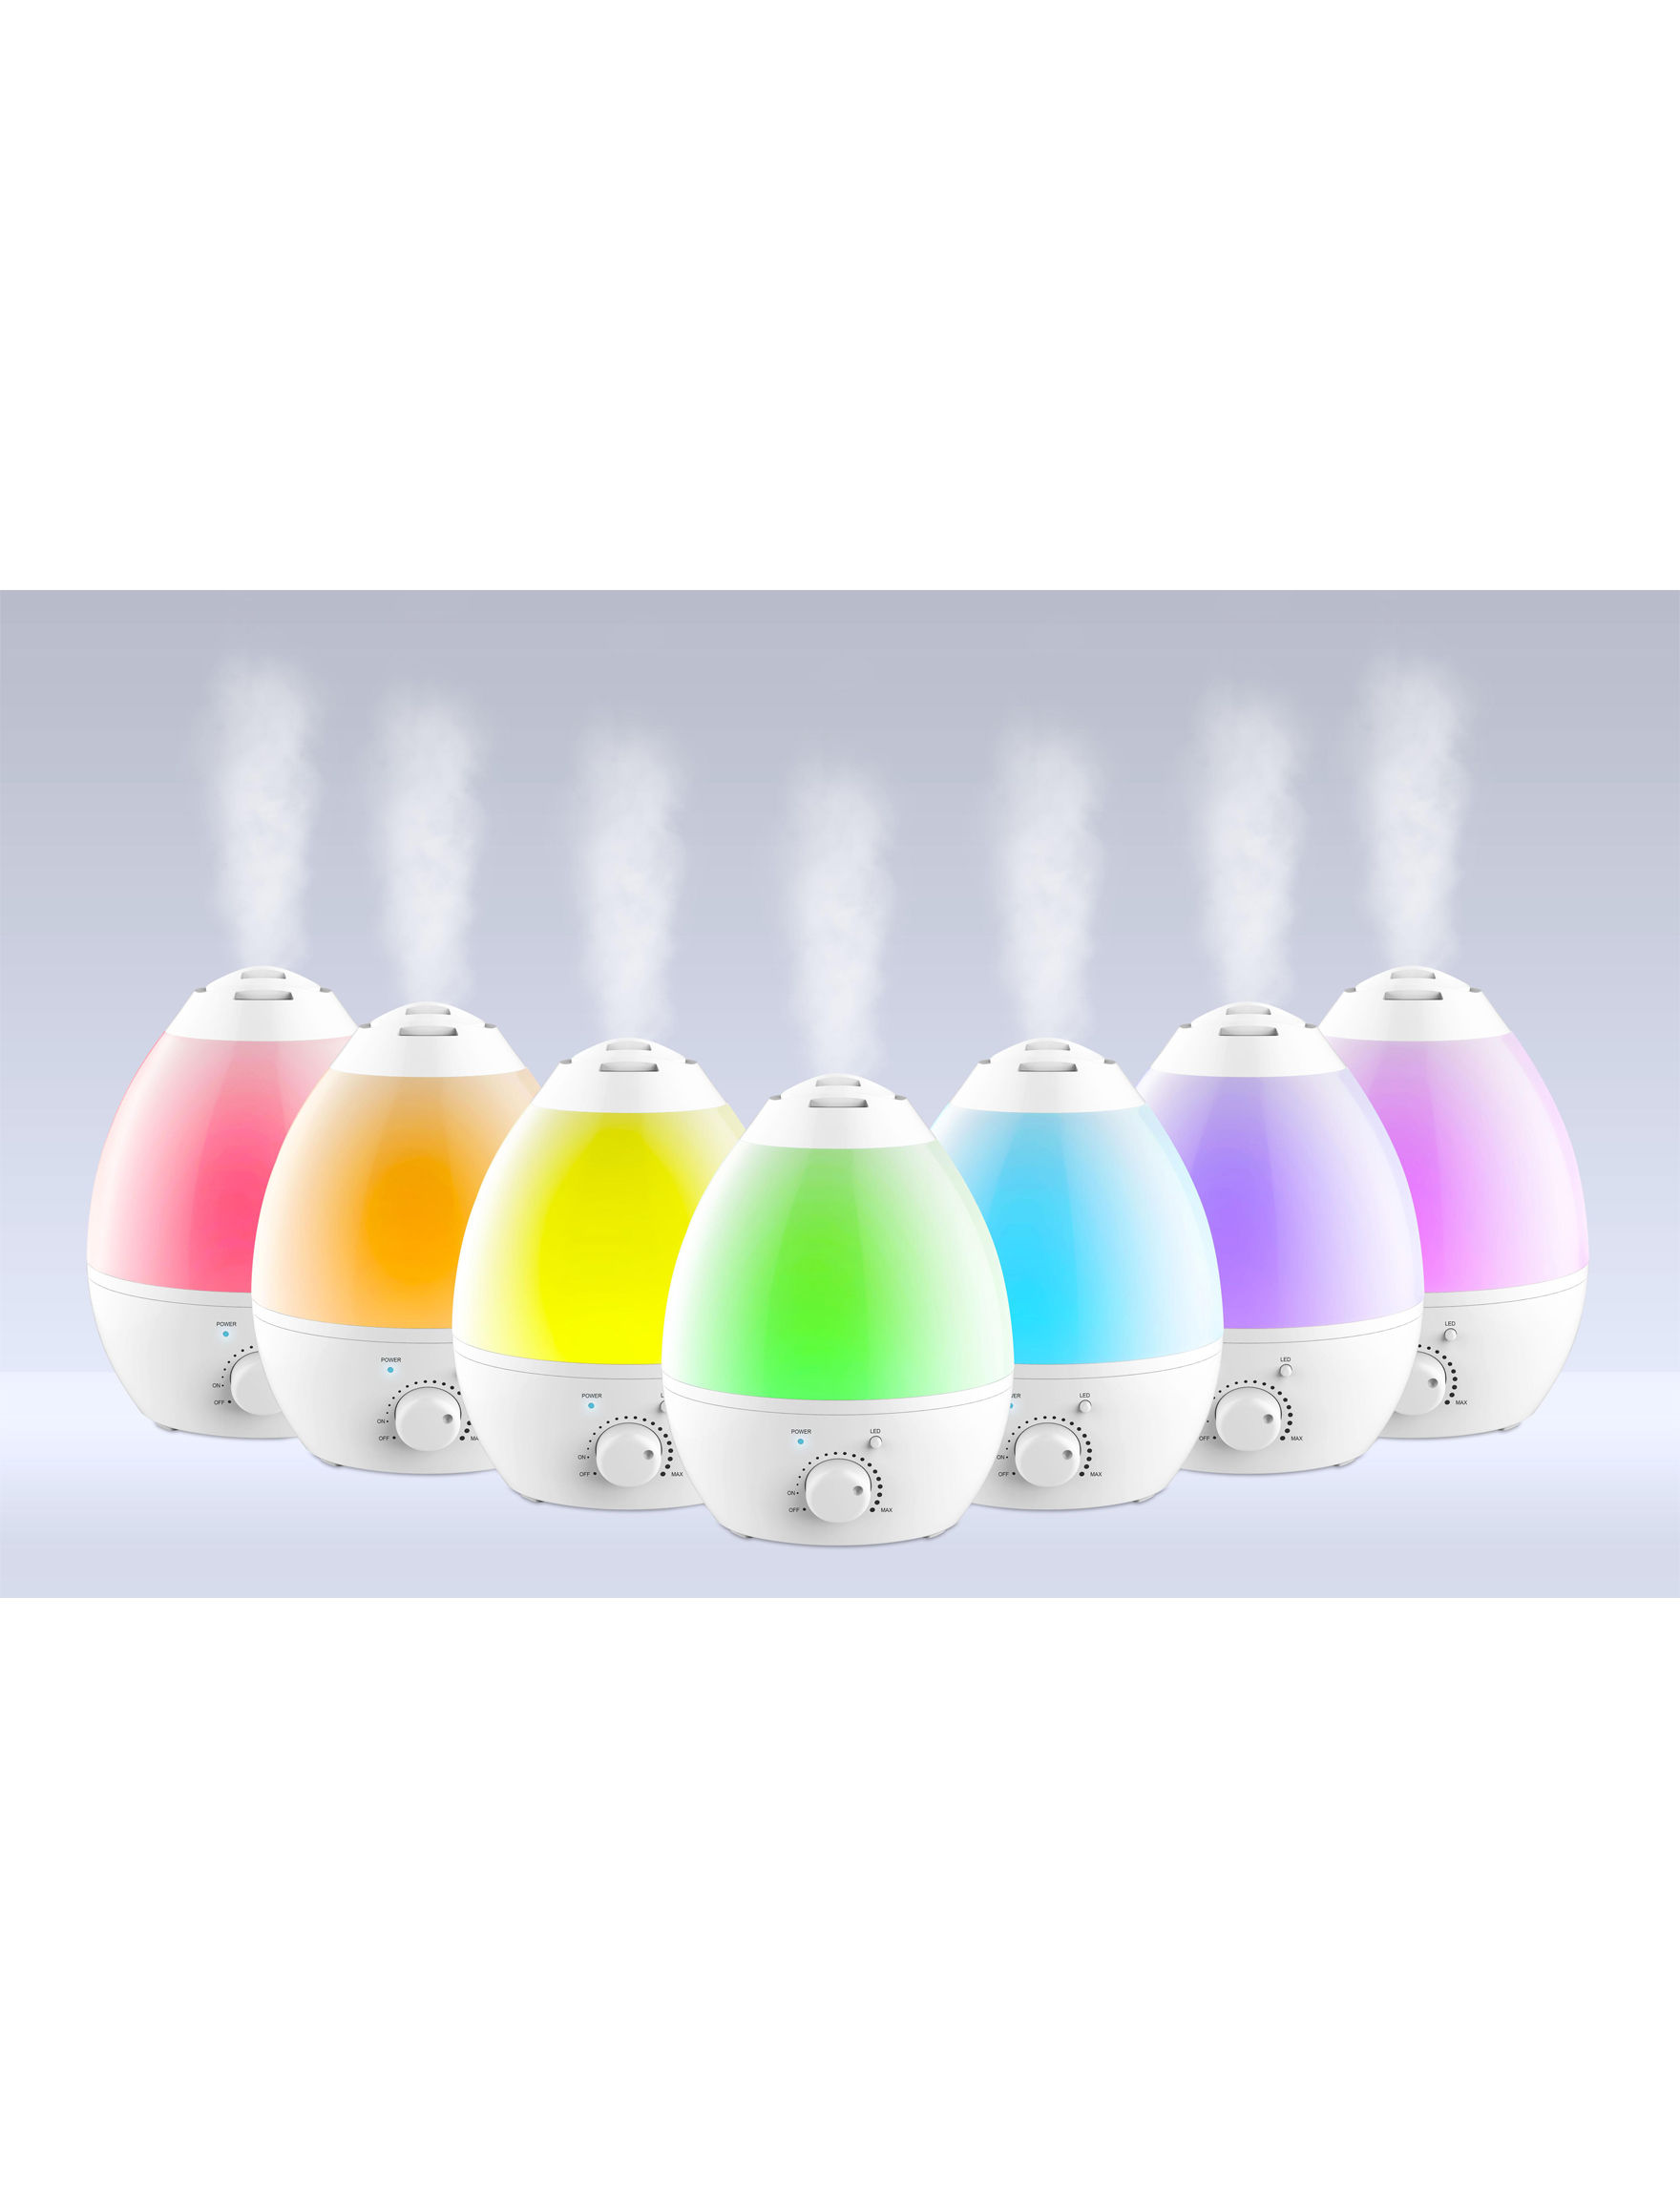 As Seen on TV White Fans Humidifiers & Air Purifiers